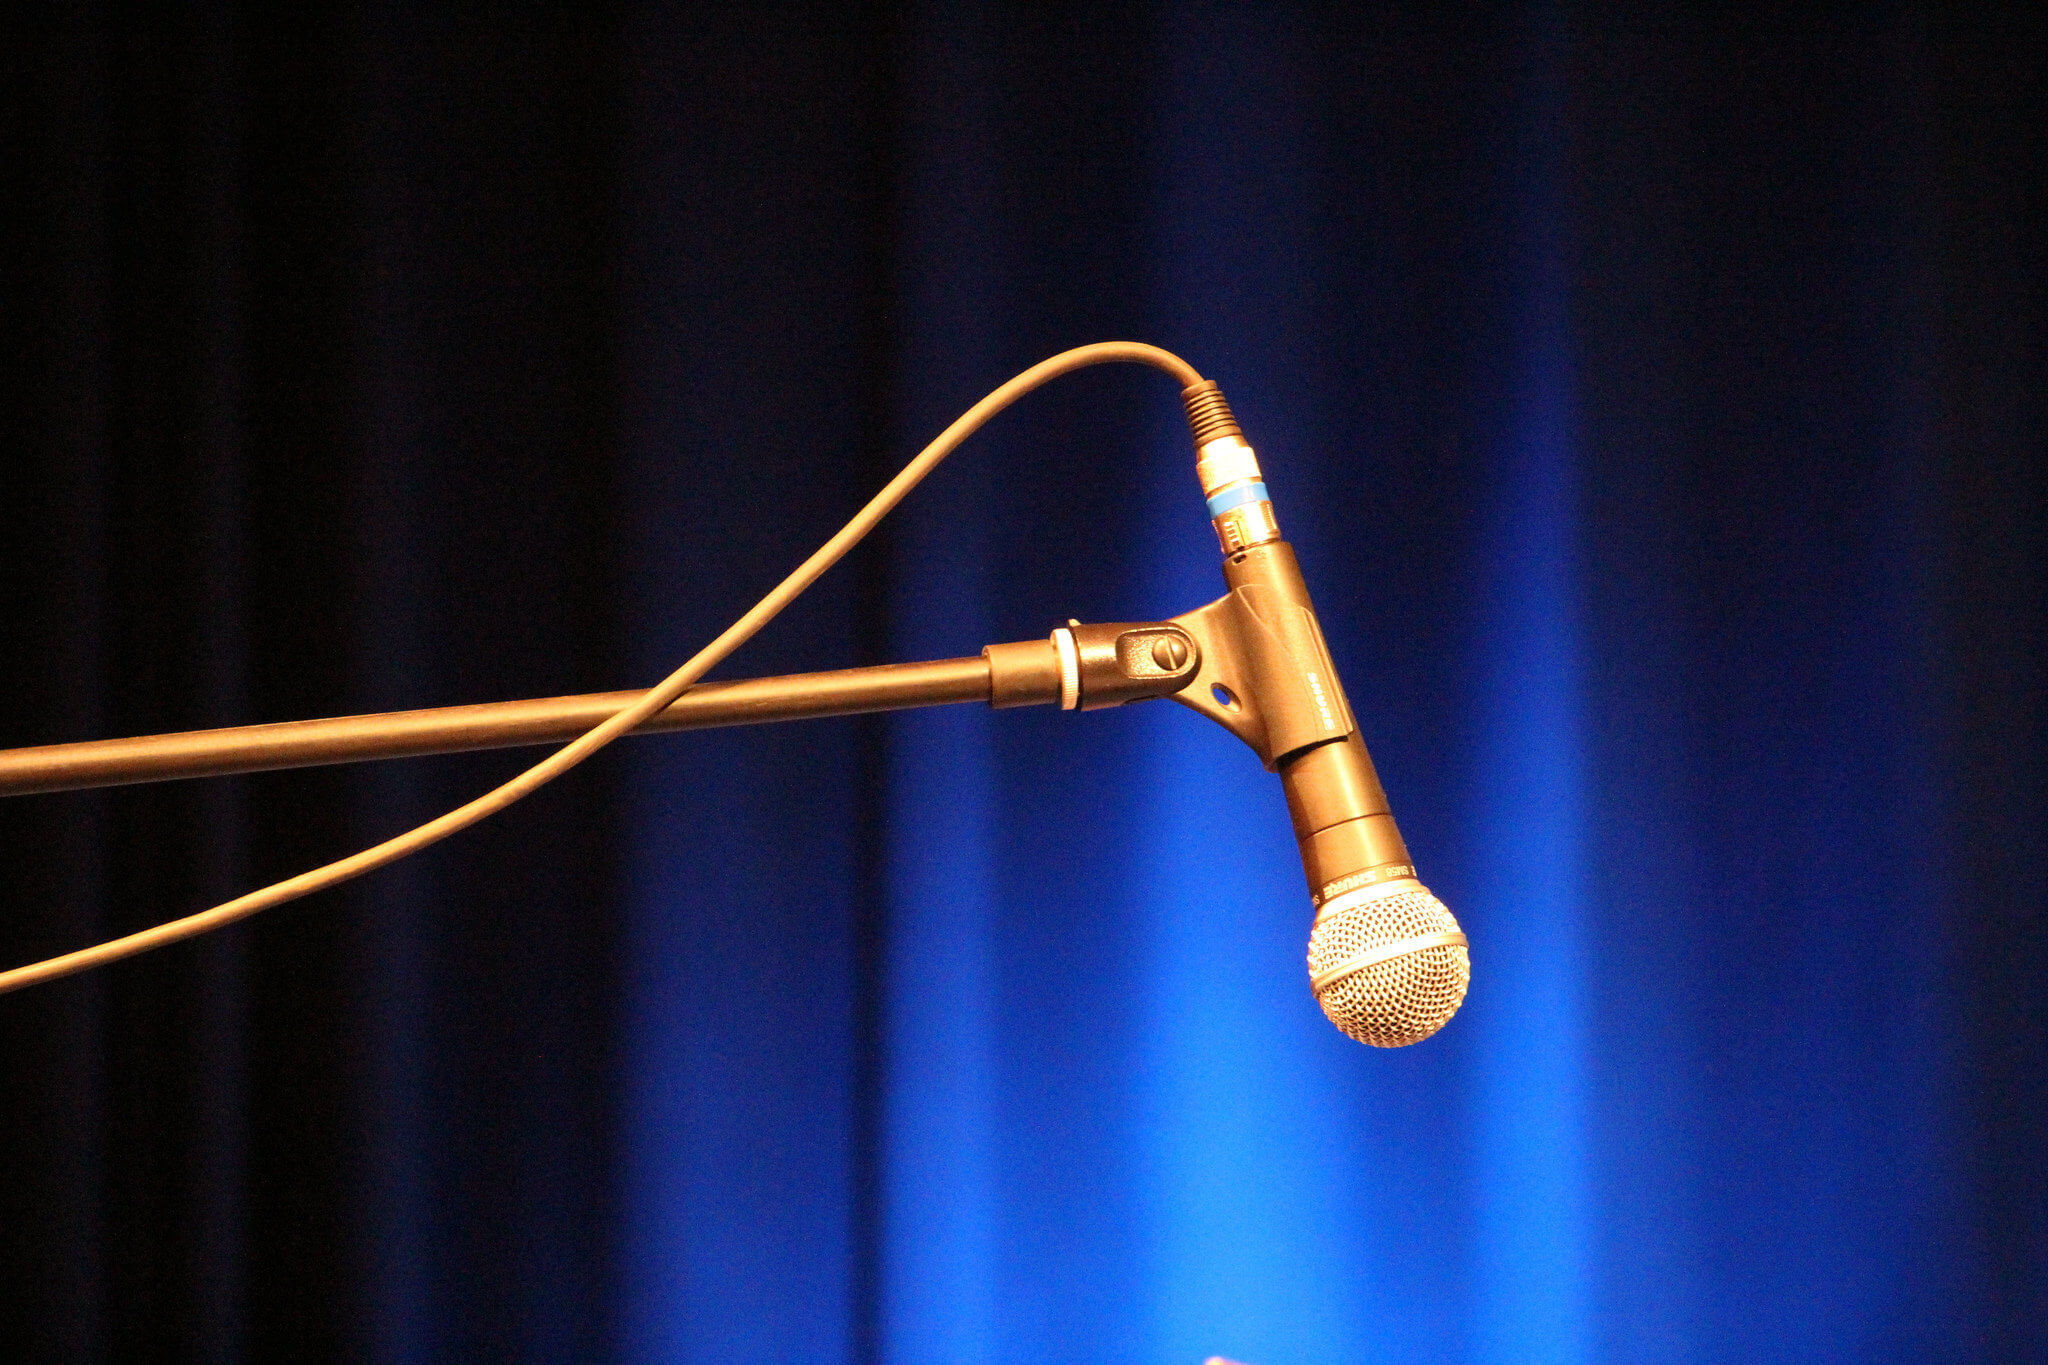 Microphone: Photo Credit Bela Troszt (Flickr.com)